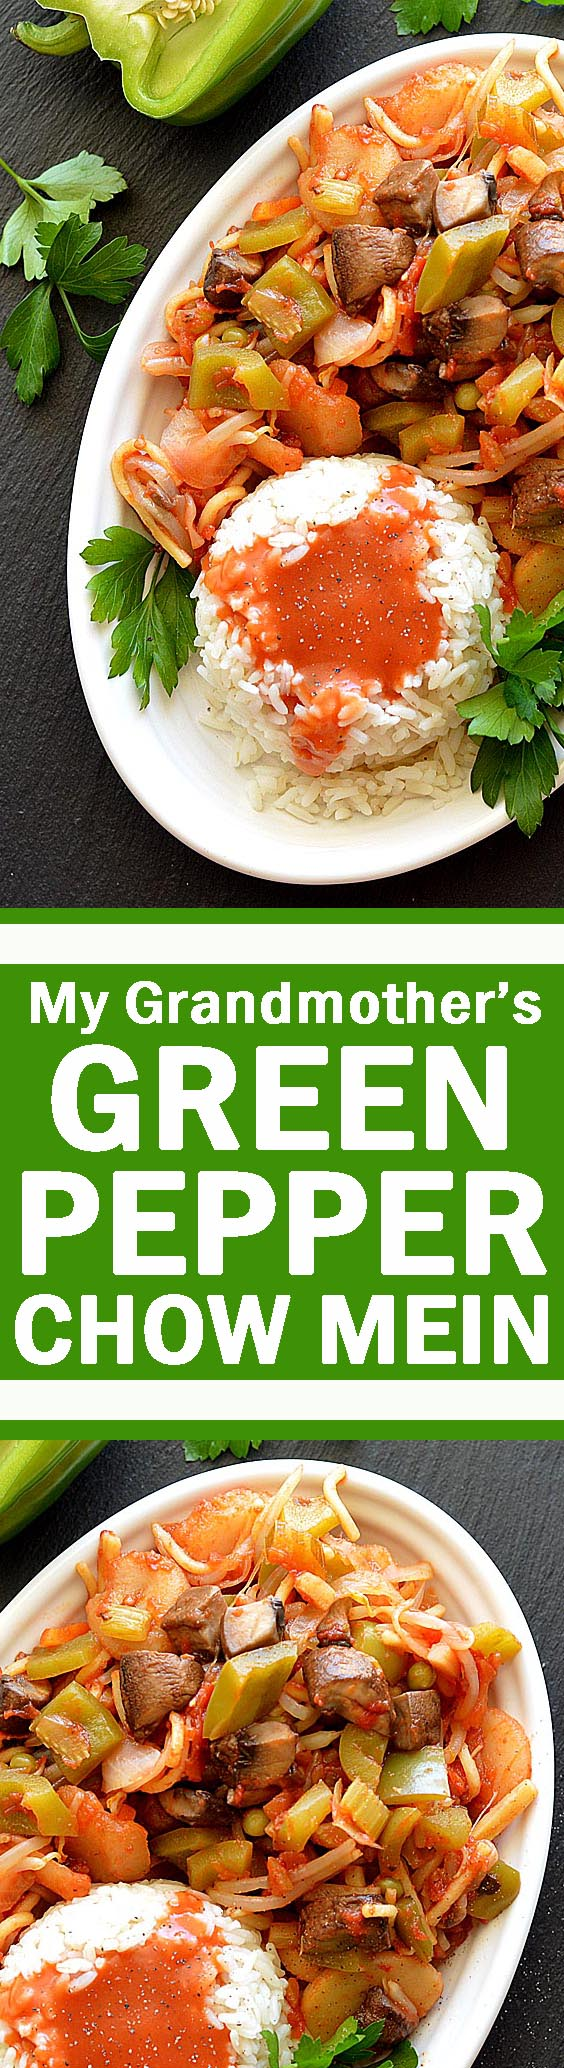 My Grandmother's Green Pepper Chow Mein